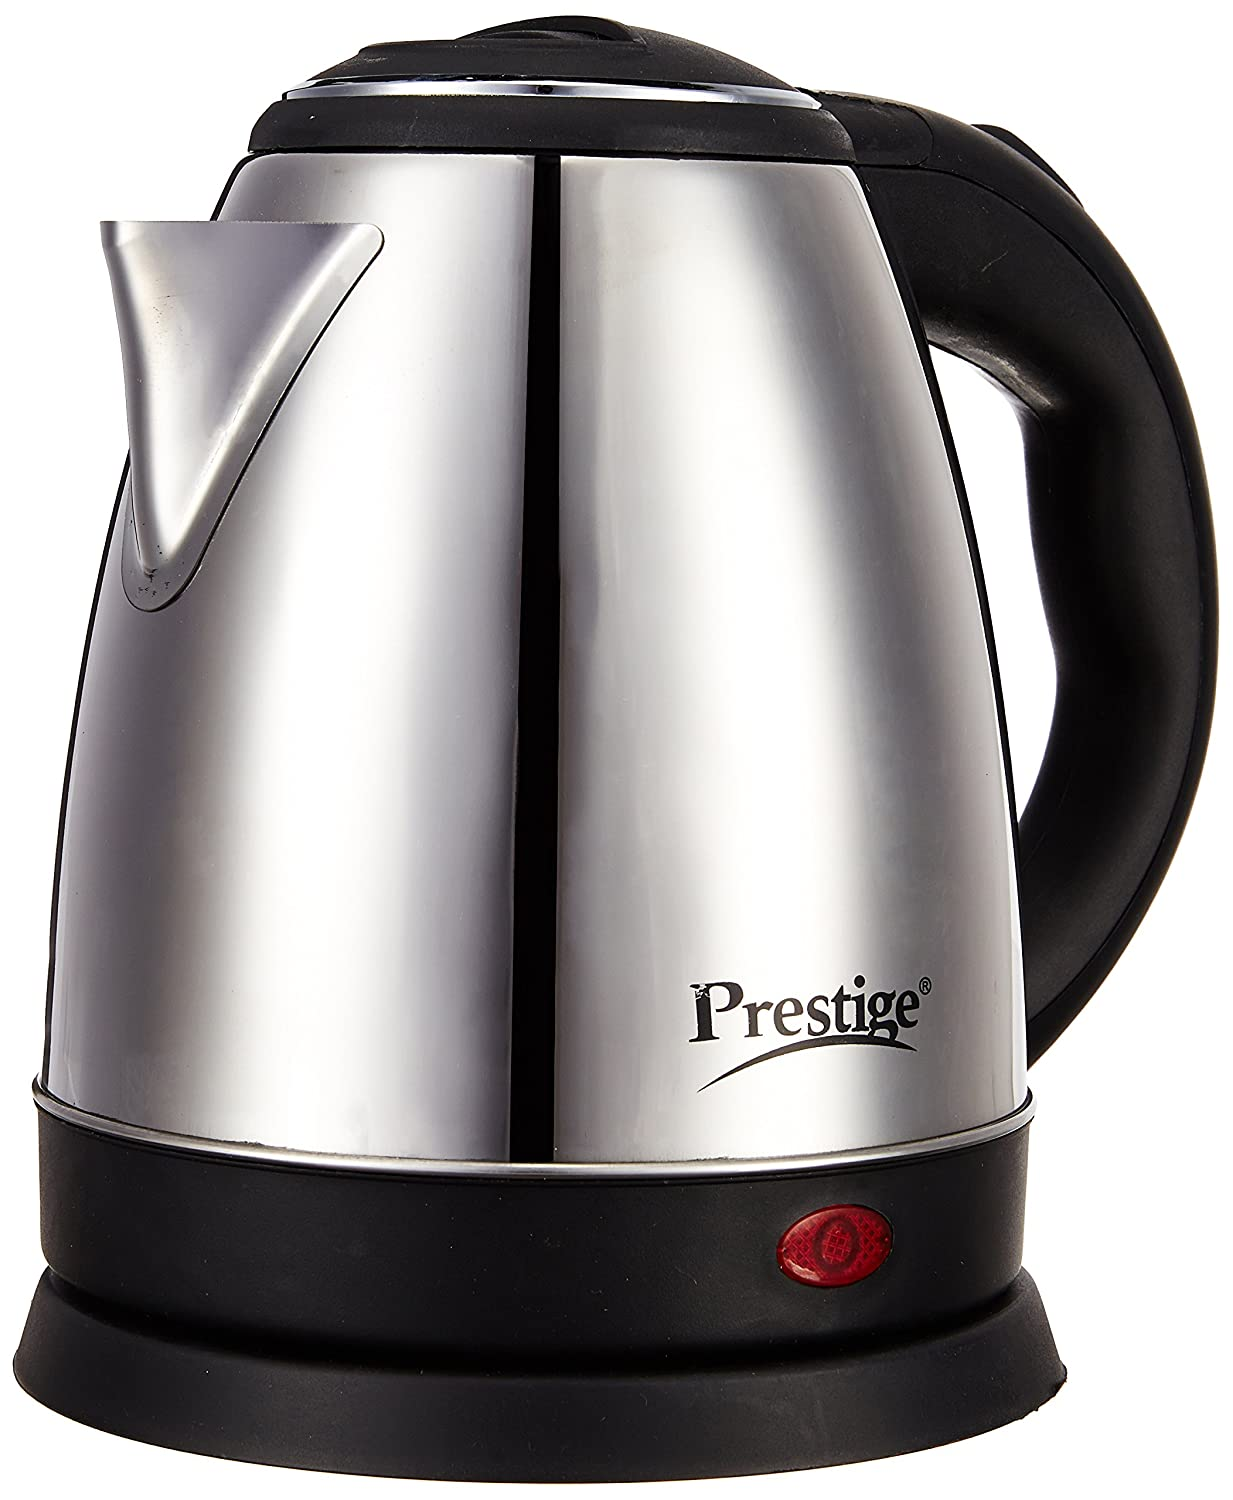 Prestige PKOSS Electric Kettle, 1.5-Litre, Black-5% OFF